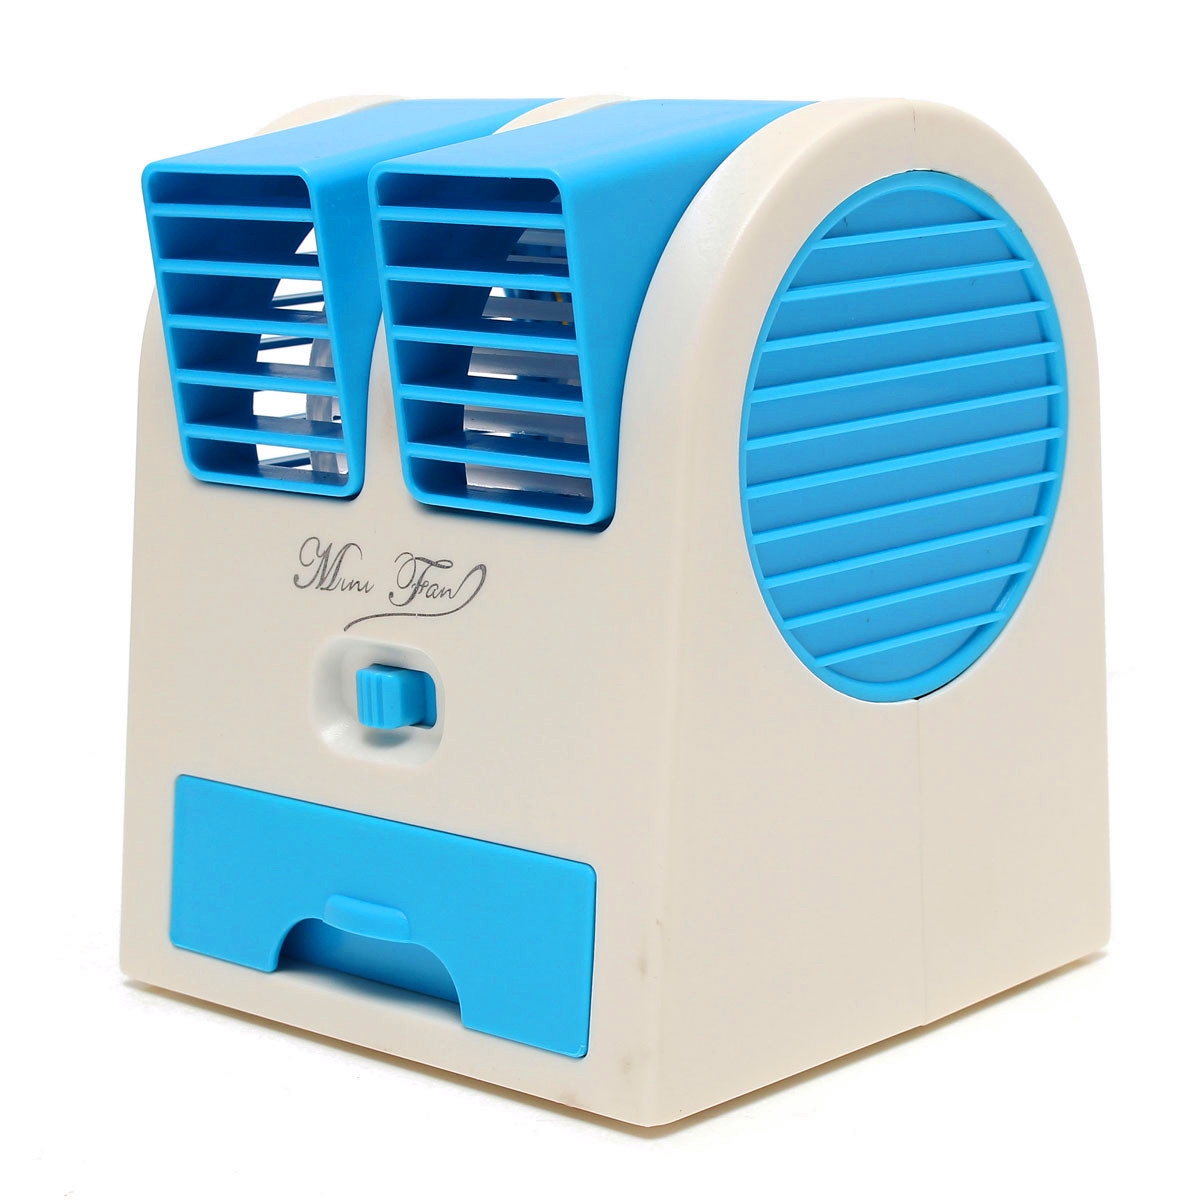 873ab65d5 Mini Summer Small USB Switch Battery Cold Fan Cooling Portable Desktop  Notebook Dual Bladeless Air Conditioner.  d7df3389-e920-4778-9177-5d741806319a.jpg ...